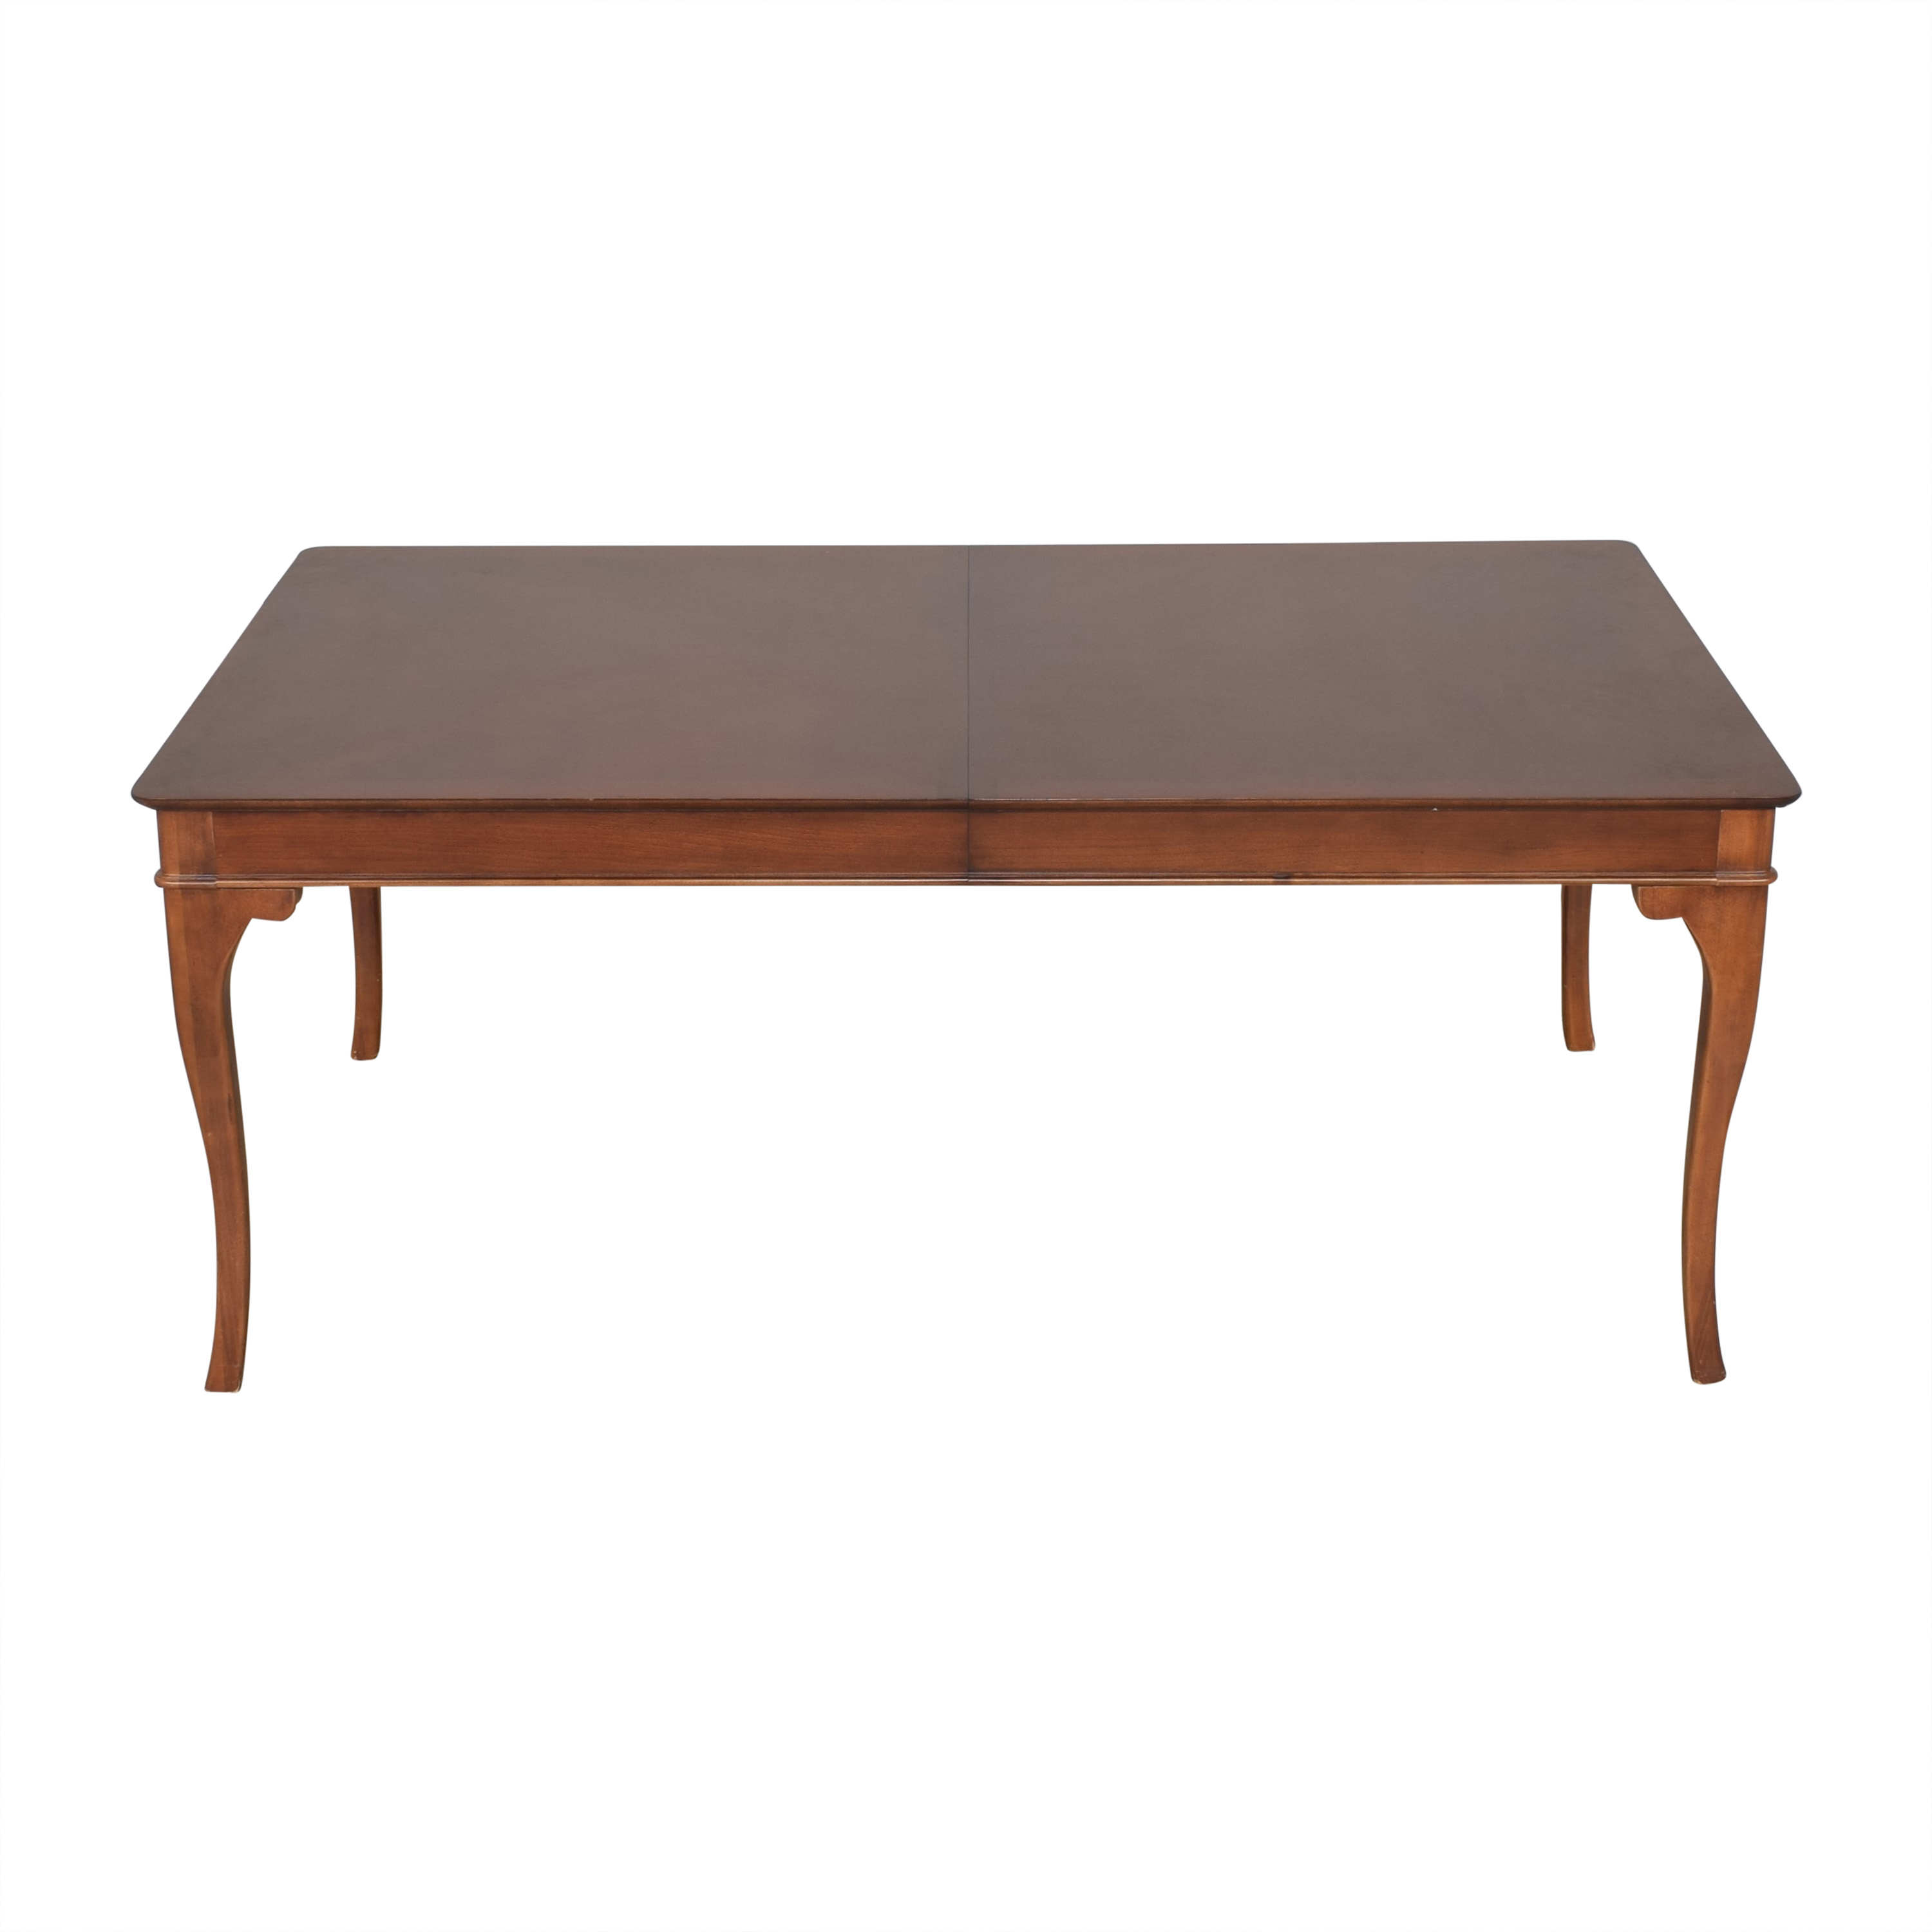 Drexel Heritage Extendable Dining Table / Dinner Tables